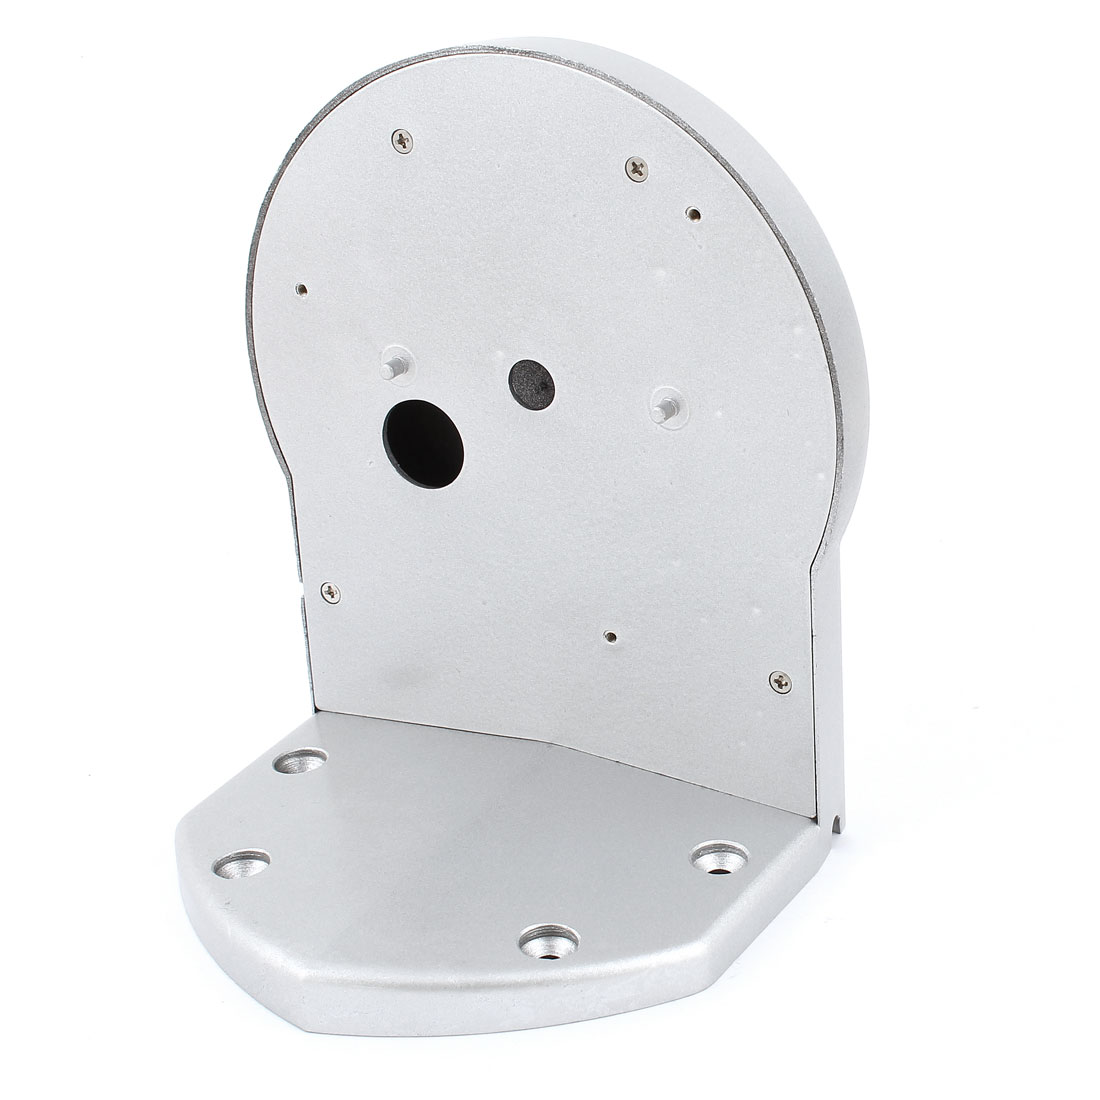 Aluminum Alloy L Shaped Wall Mounting Holder Bracket for Dome Camera